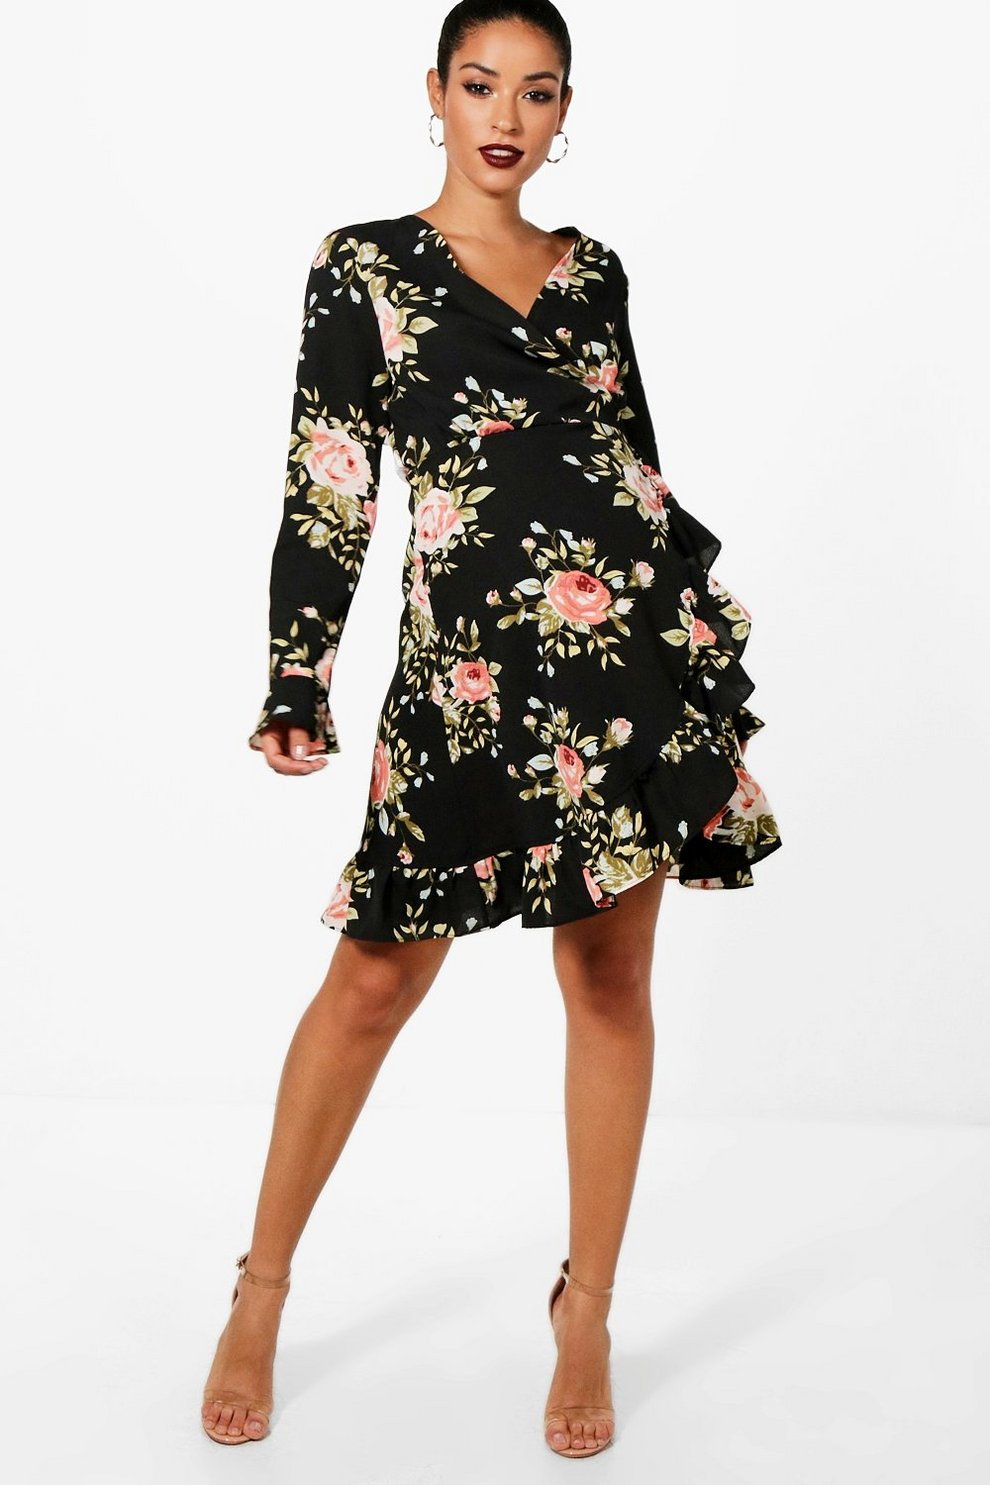 Boohoo Maternity Floral Ruched Wrap Dress How Much For Sale Good Selling Cheapest Price For Sale lFjpyKCbC